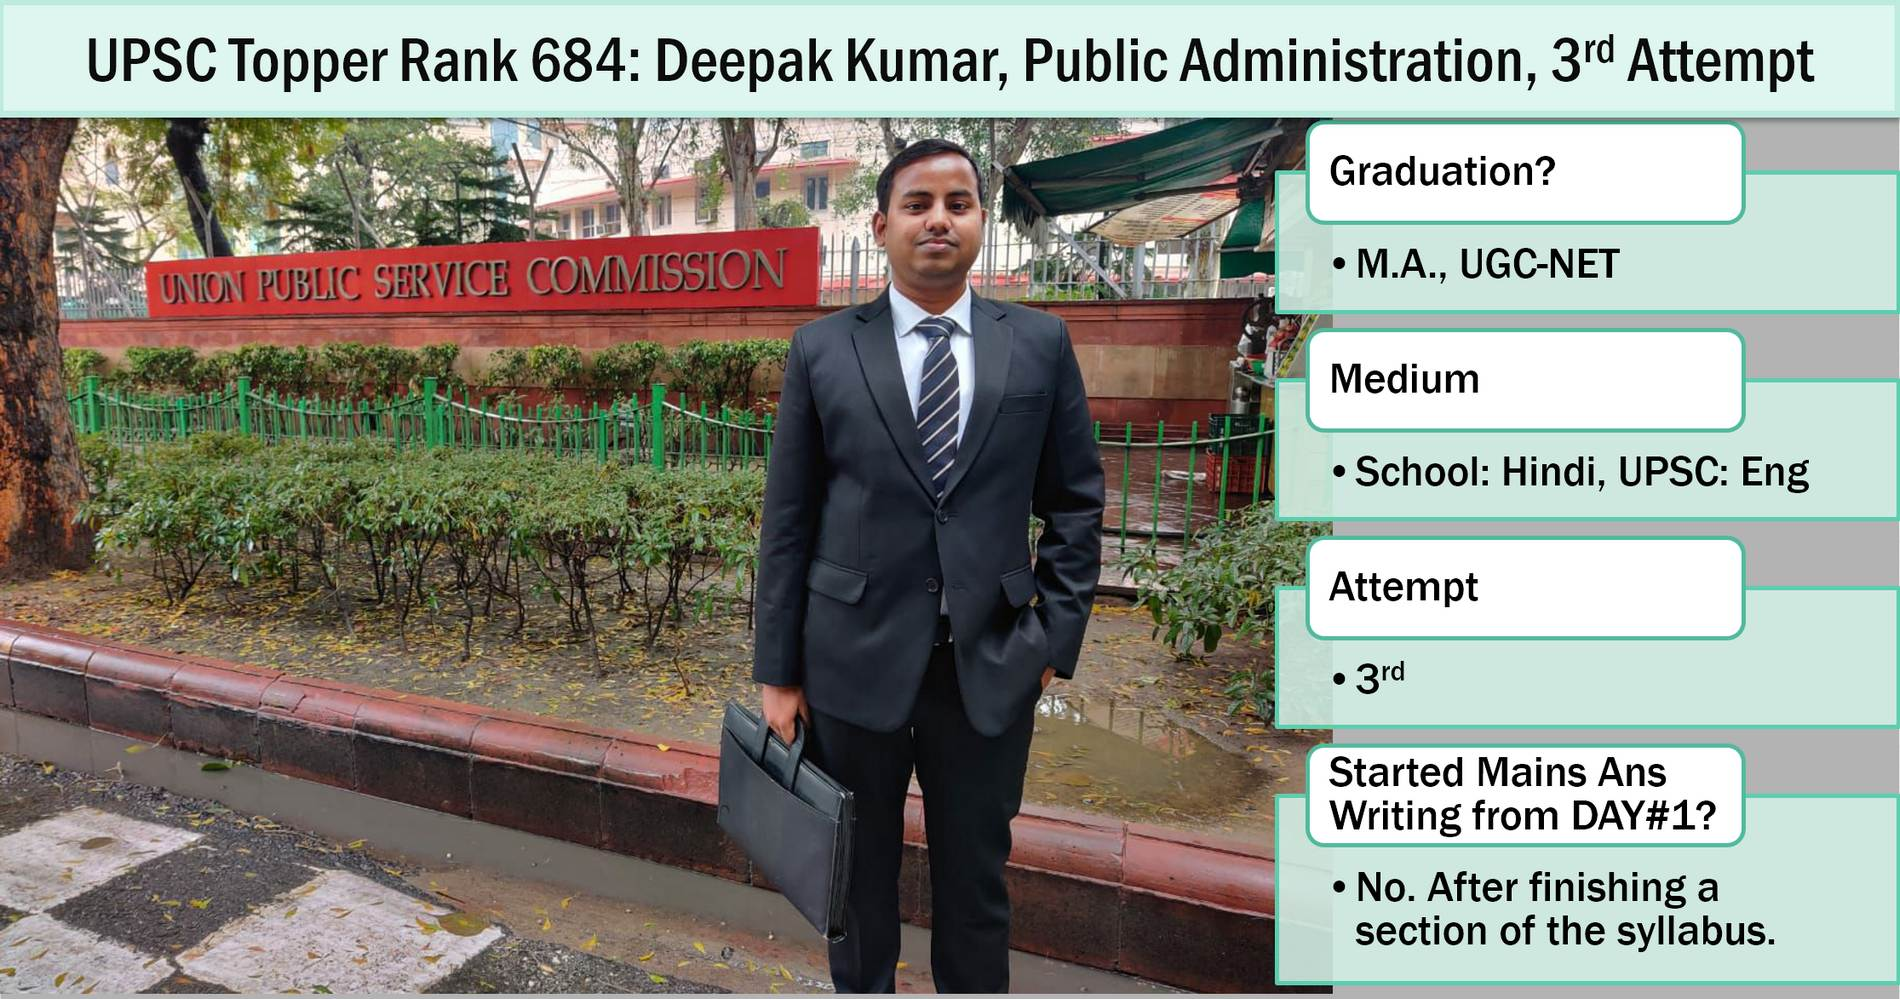 UPSC Topper Rank 684: Deepak Kumar standing outside UPSC office building with Public Administration optional subject for his interview personality test.